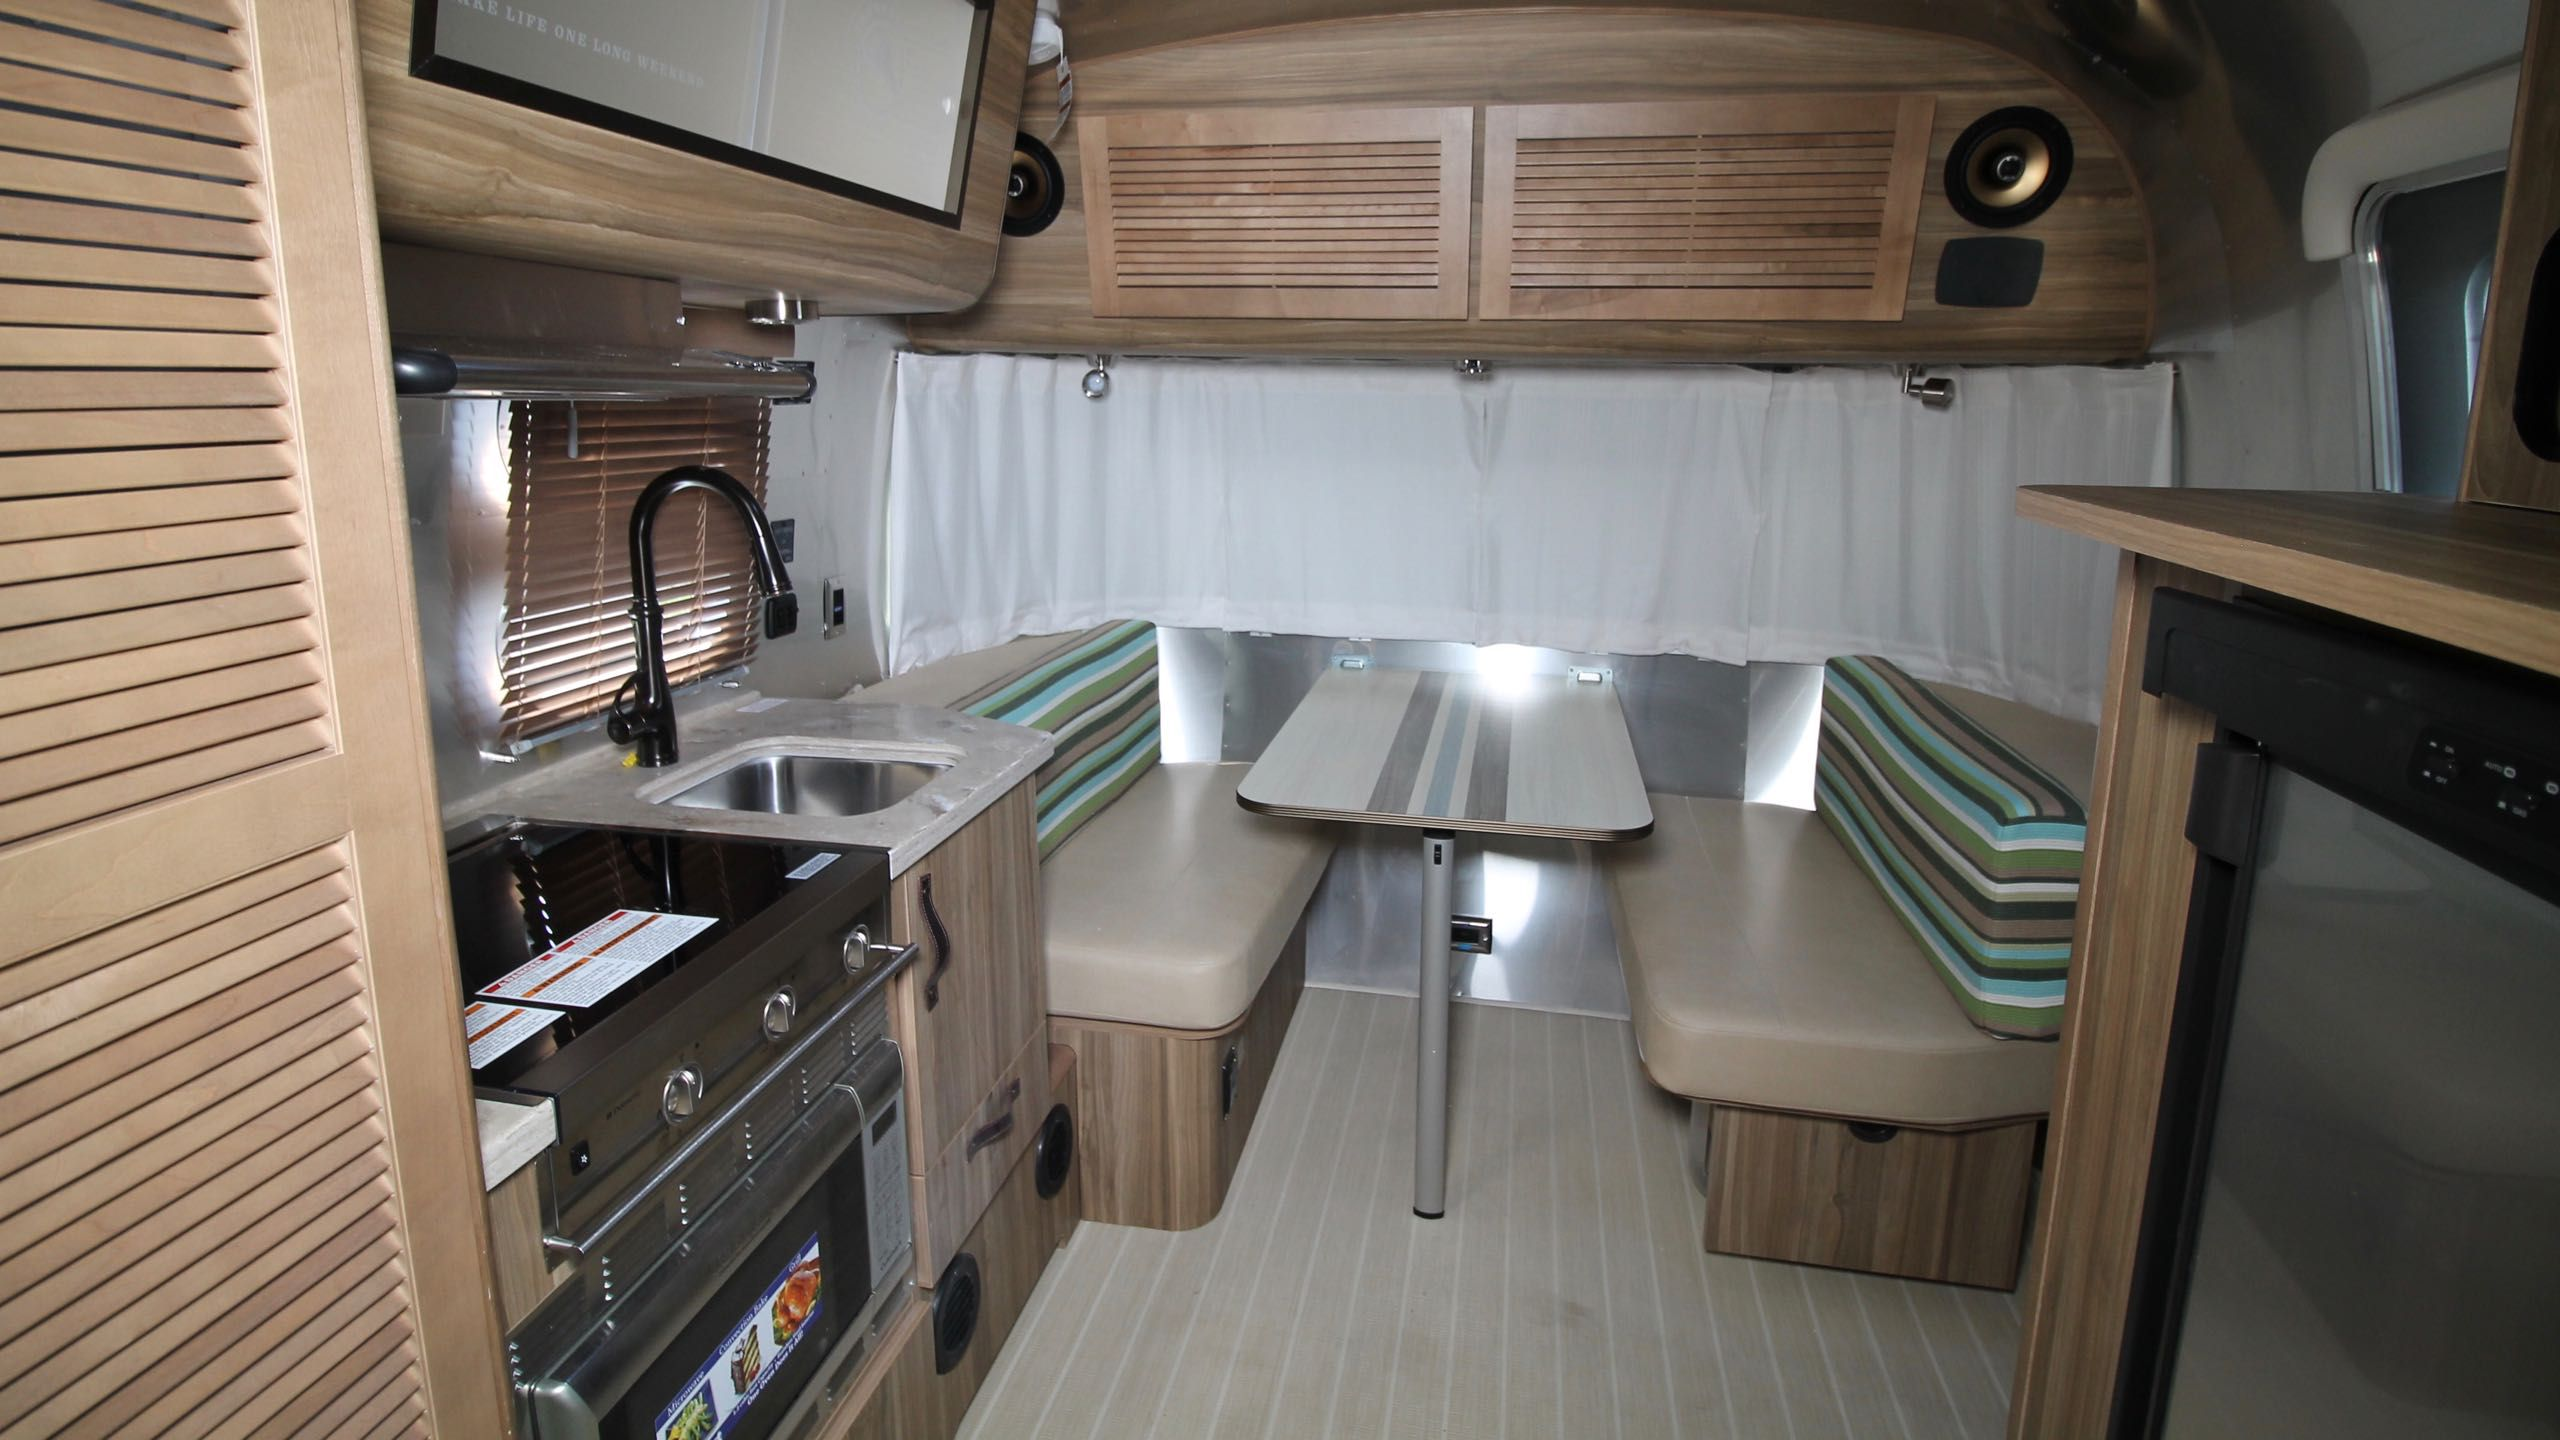 Wonderful NEW 2018 AIRSTREAM TOMMY BAHAMA 19CB TRAVEL TRAILER - 542282 RVHotline RV Trader